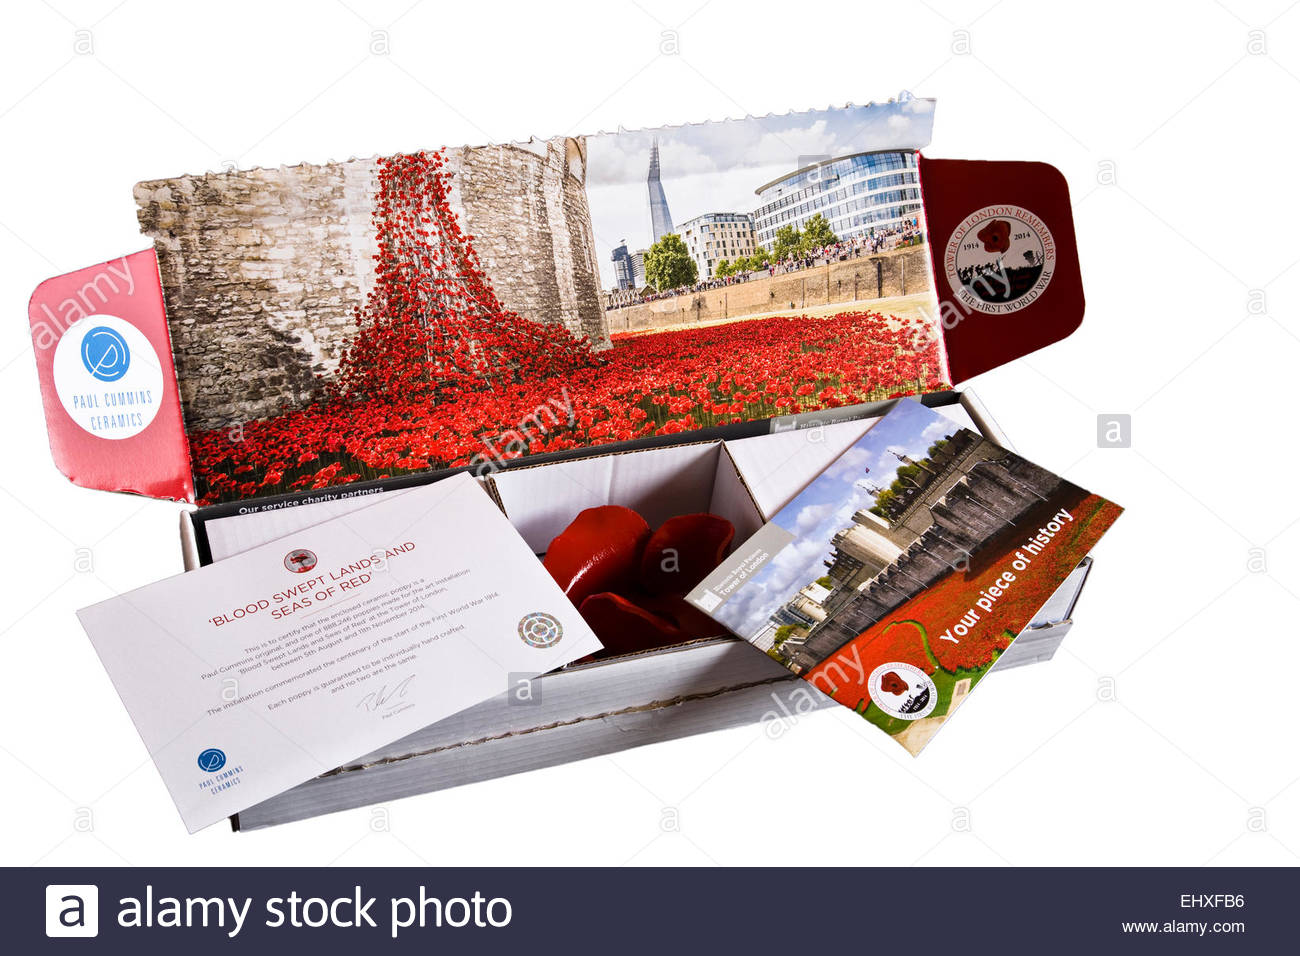 Remembrance Day red poppy commemoration from the Tower of London with certificate - Stock Image